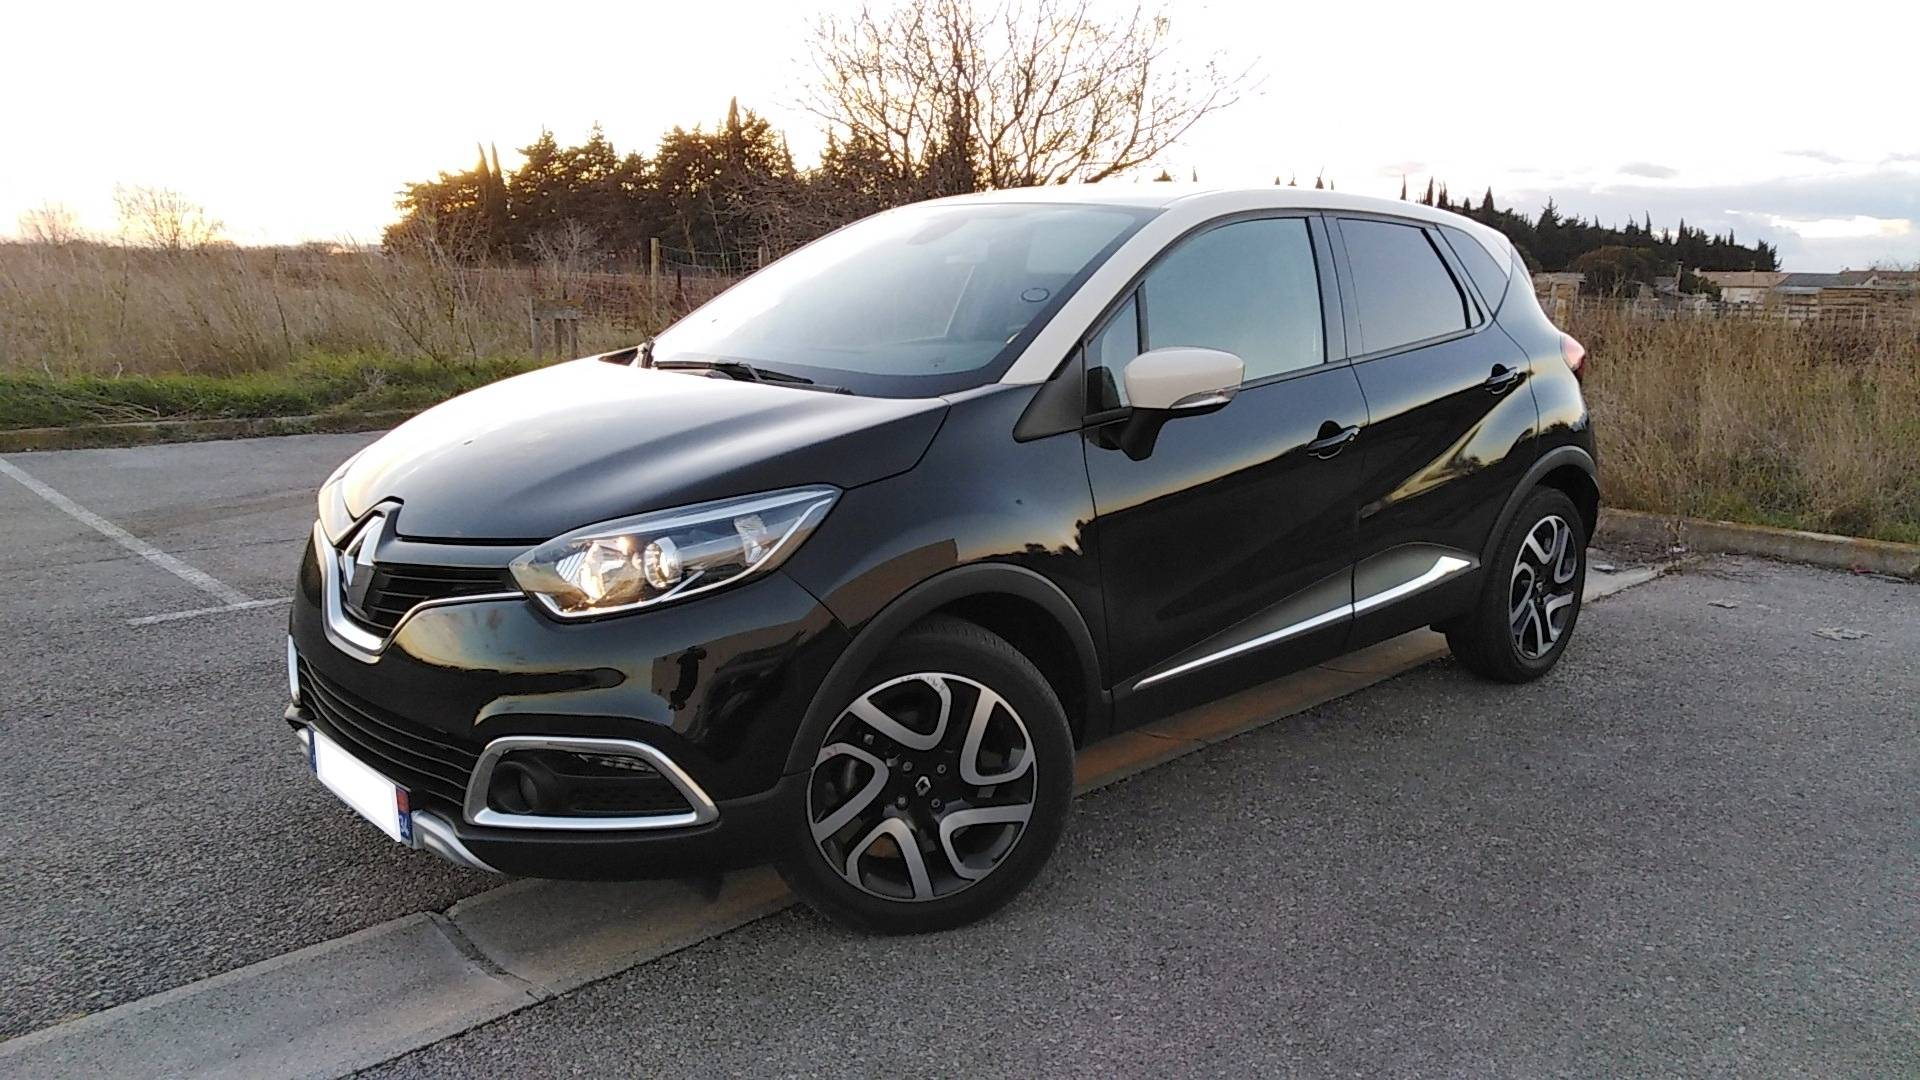 renault captur d 39 occasion 1 5 dci 90 energy intens edc bva montpellier carizy. Black Bedroom Furniture Sets. Home Design Ideas